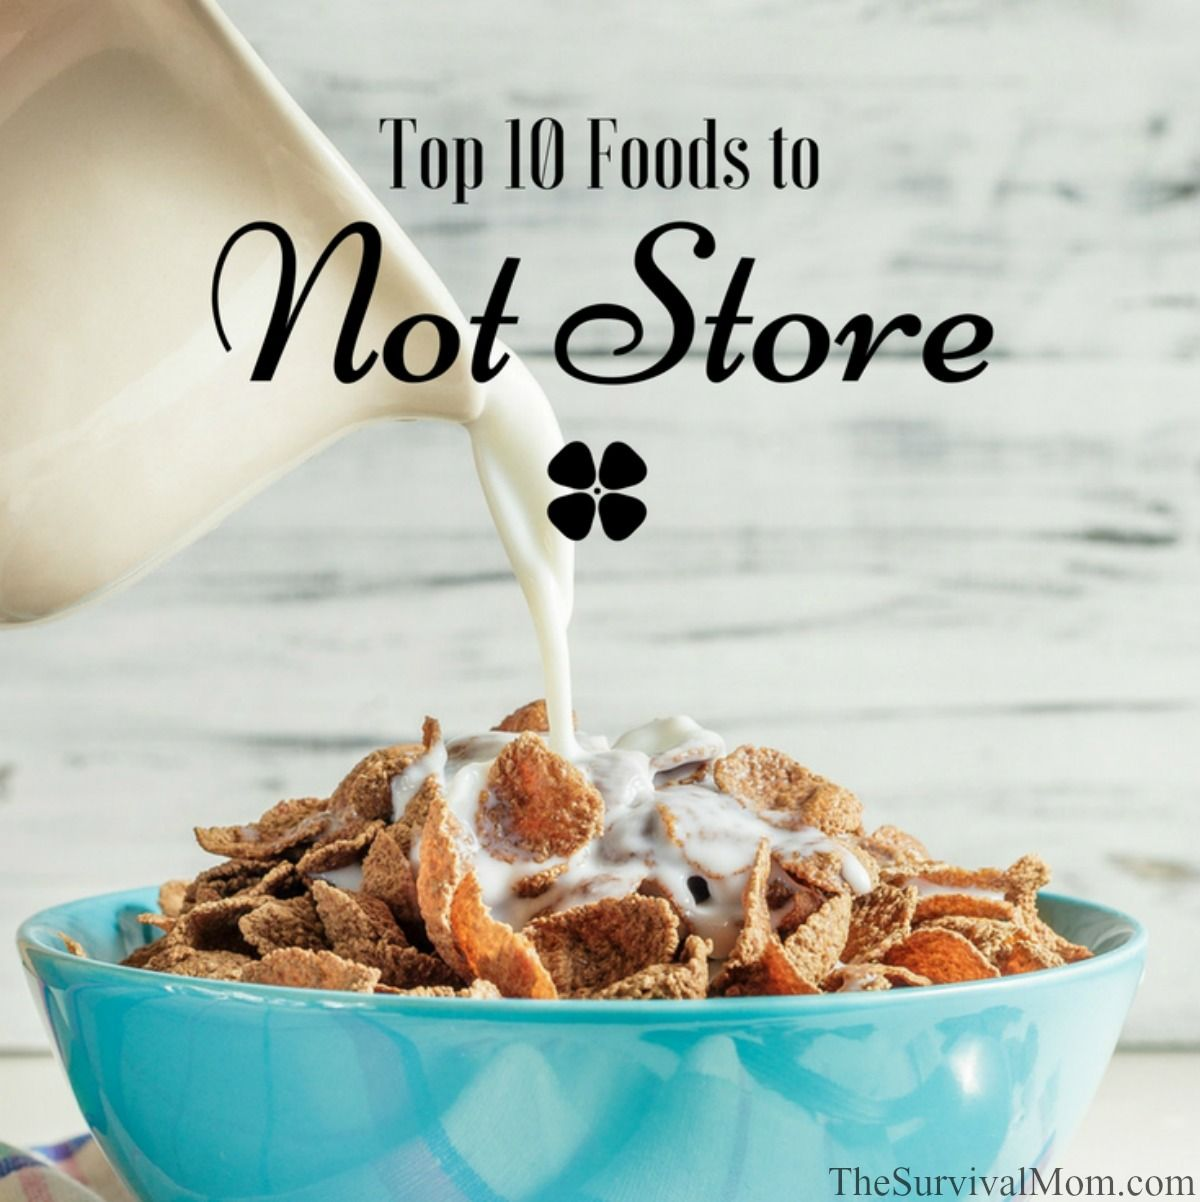 food storage tips, what foods are not good for storage,